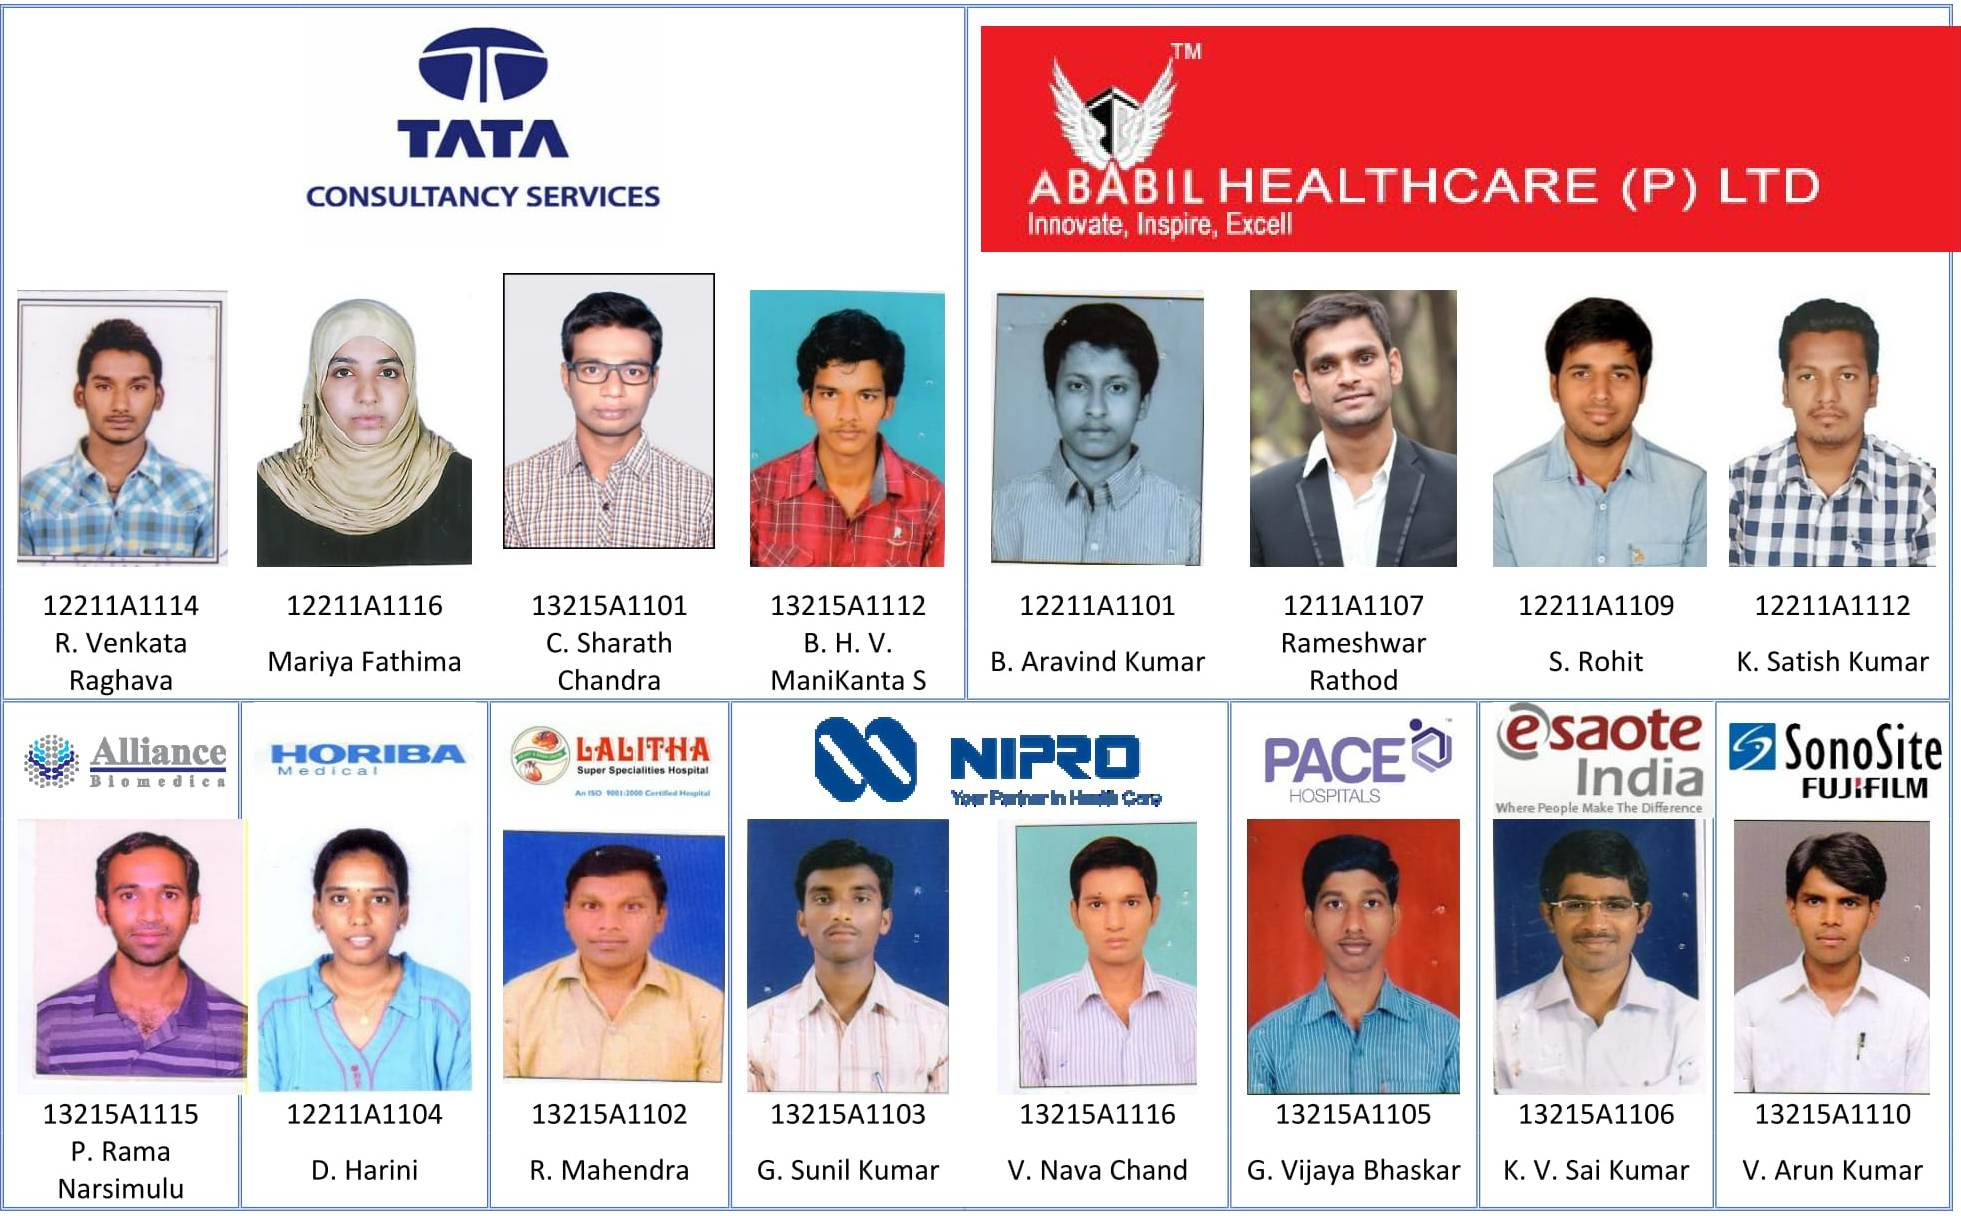 BME 2012 Batch Placements